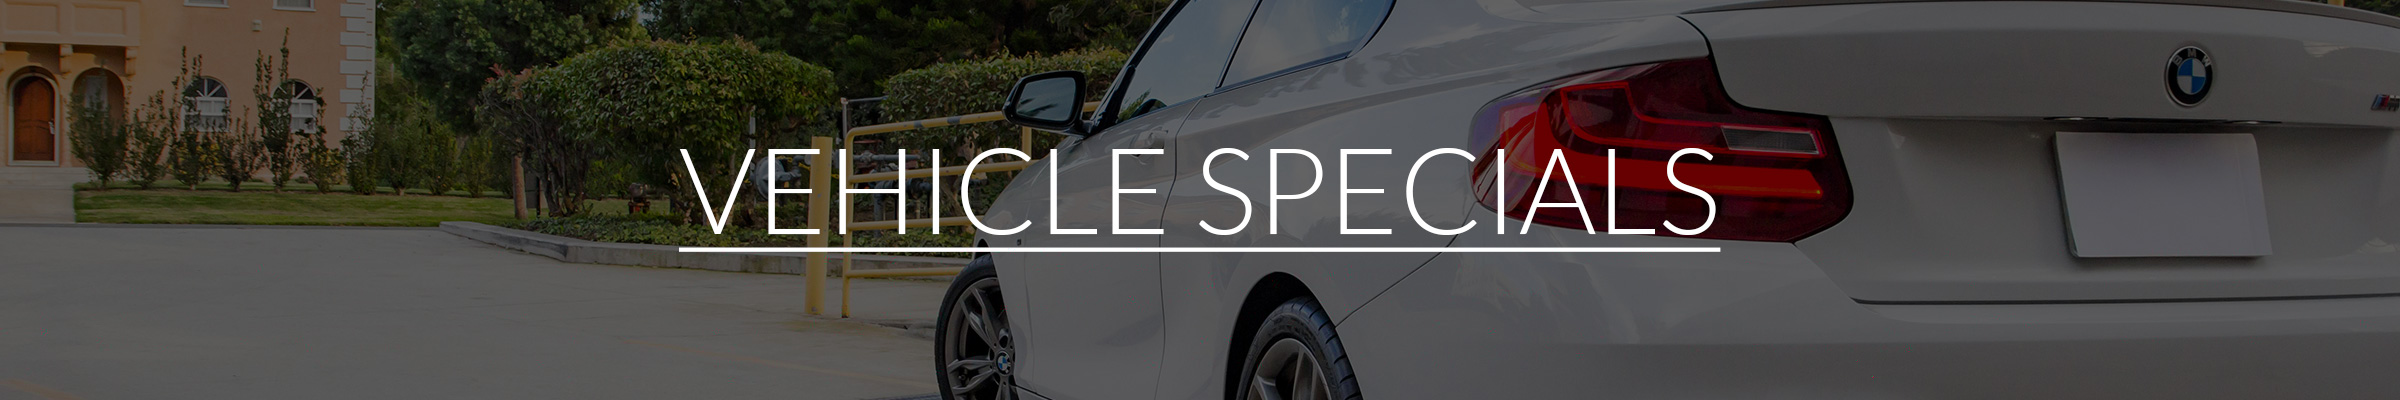 banner-vehiclespecial